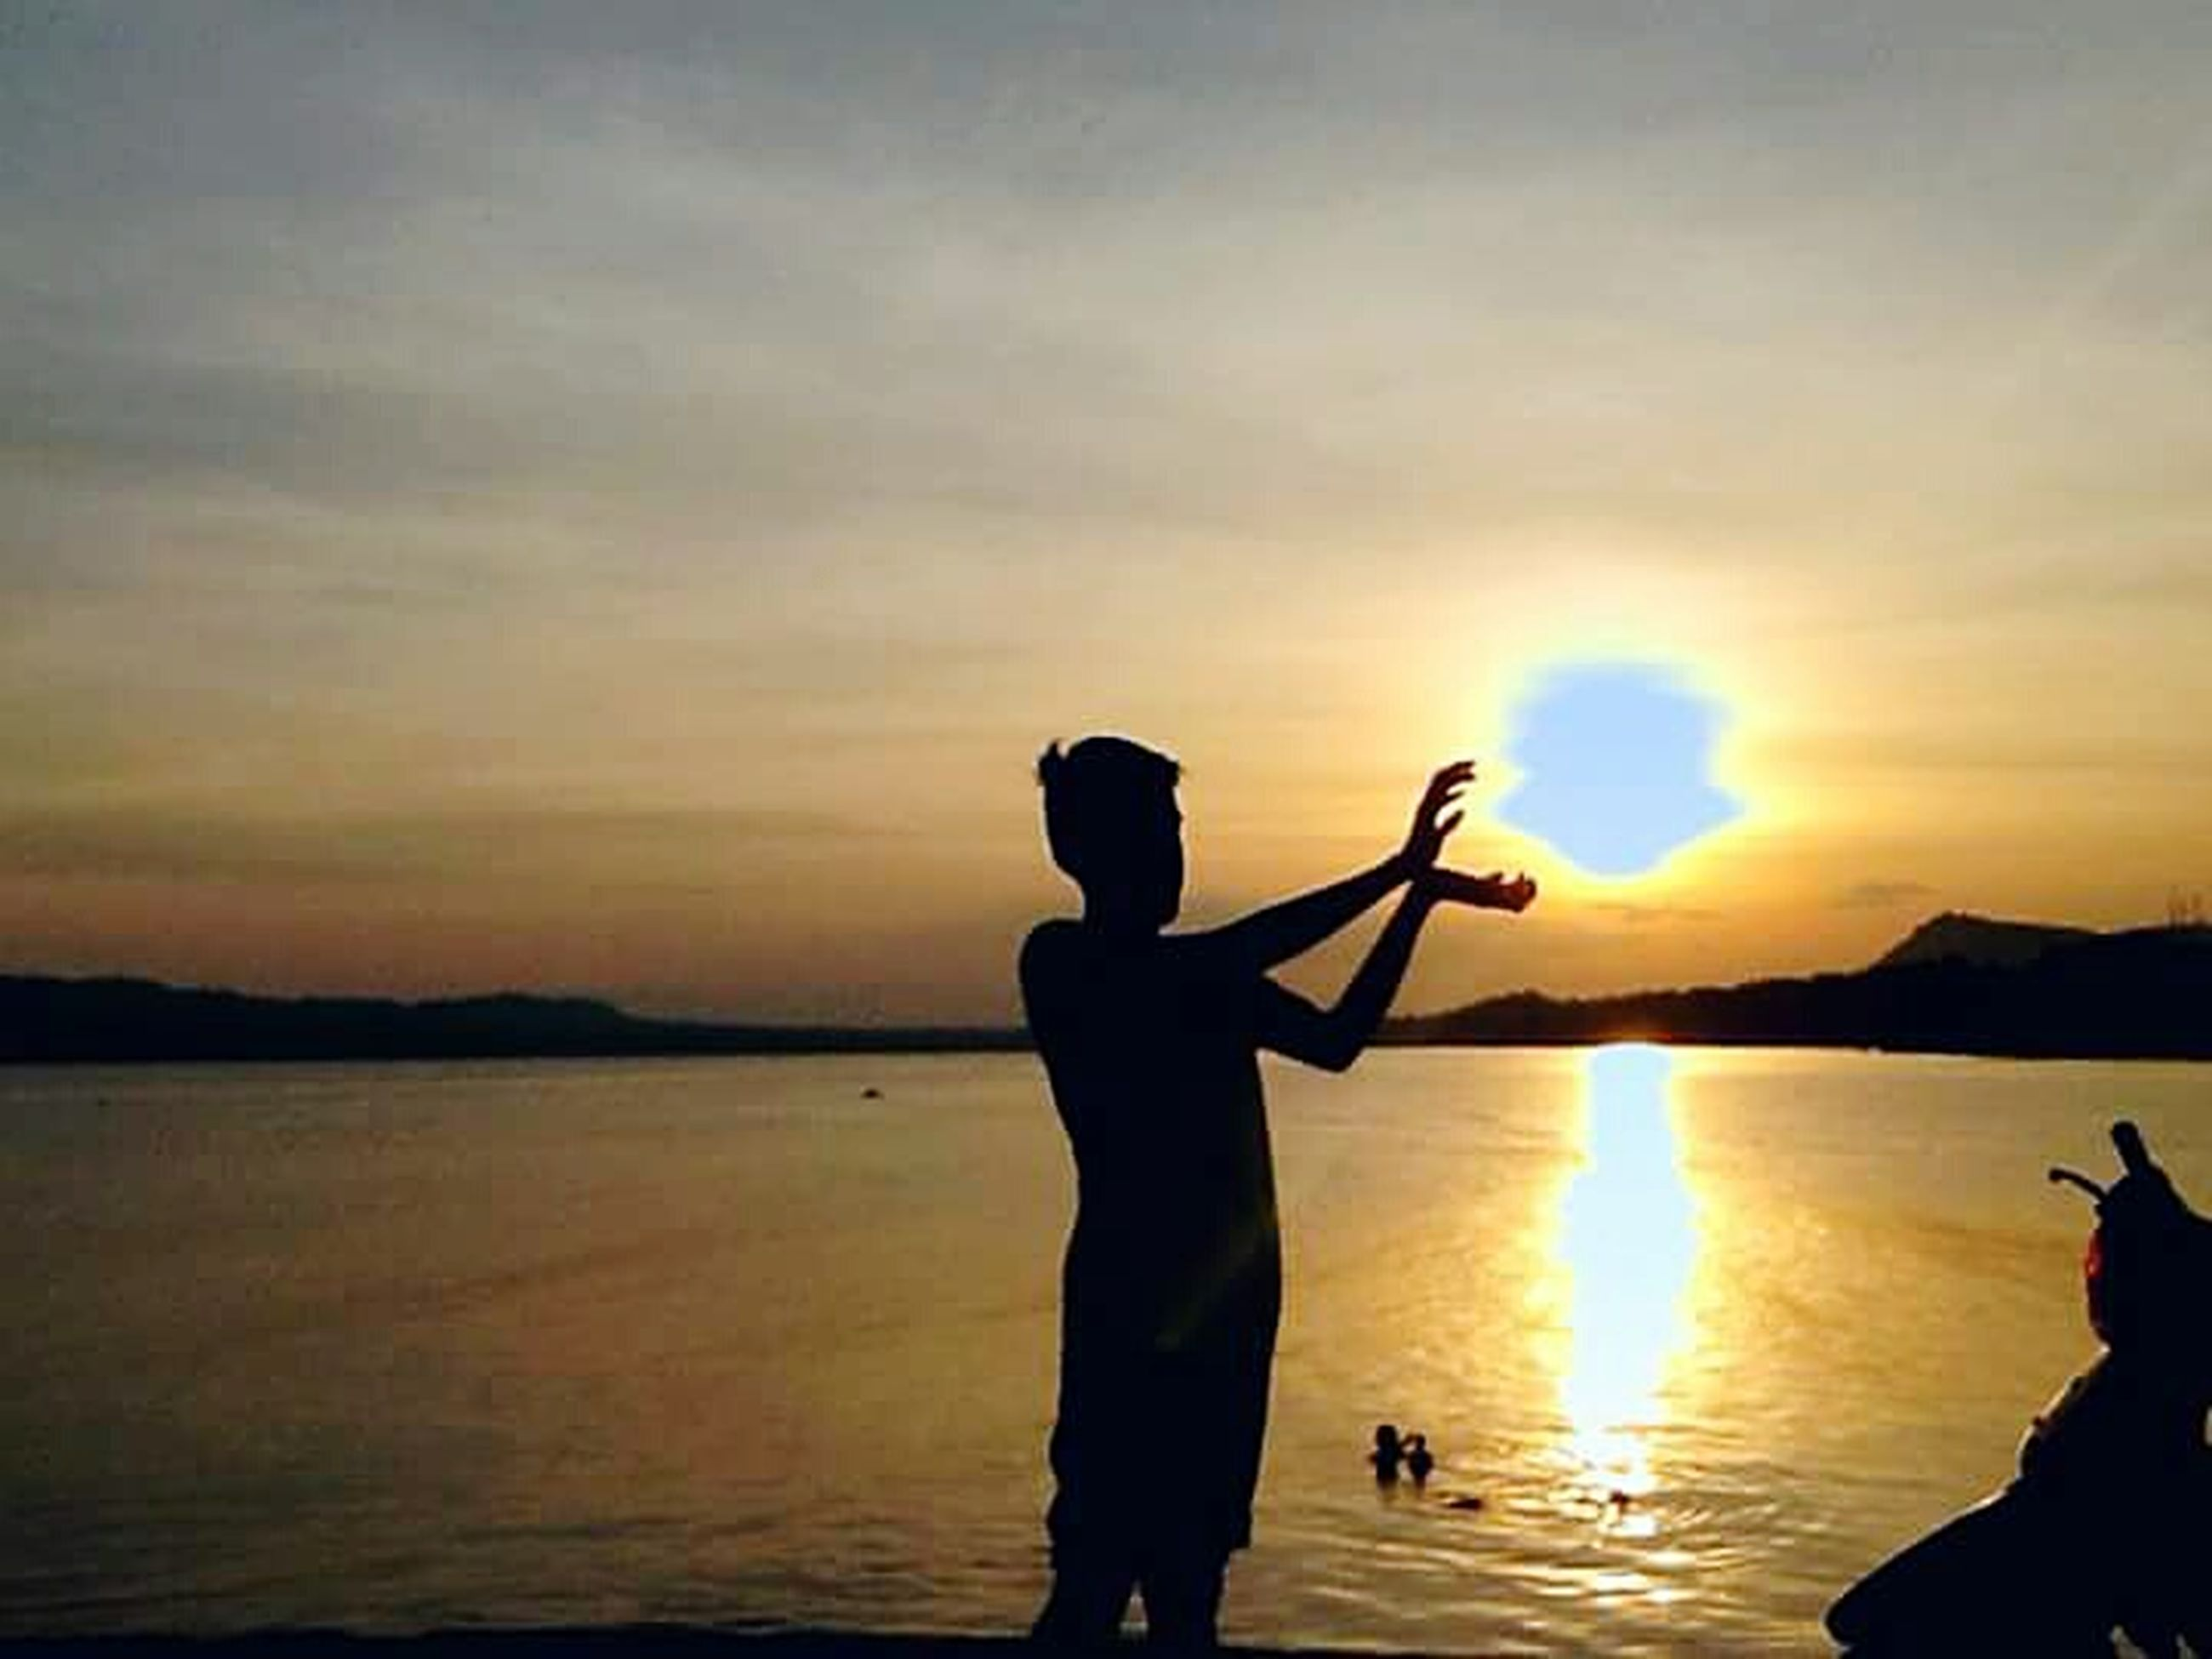 sunset, water, lifestyles, leisure activity, silhouette, sun, sky, sea, men, holding, standing, beauty in nature, scenics, nature, reflection, rear view, orange color, tranquil scene